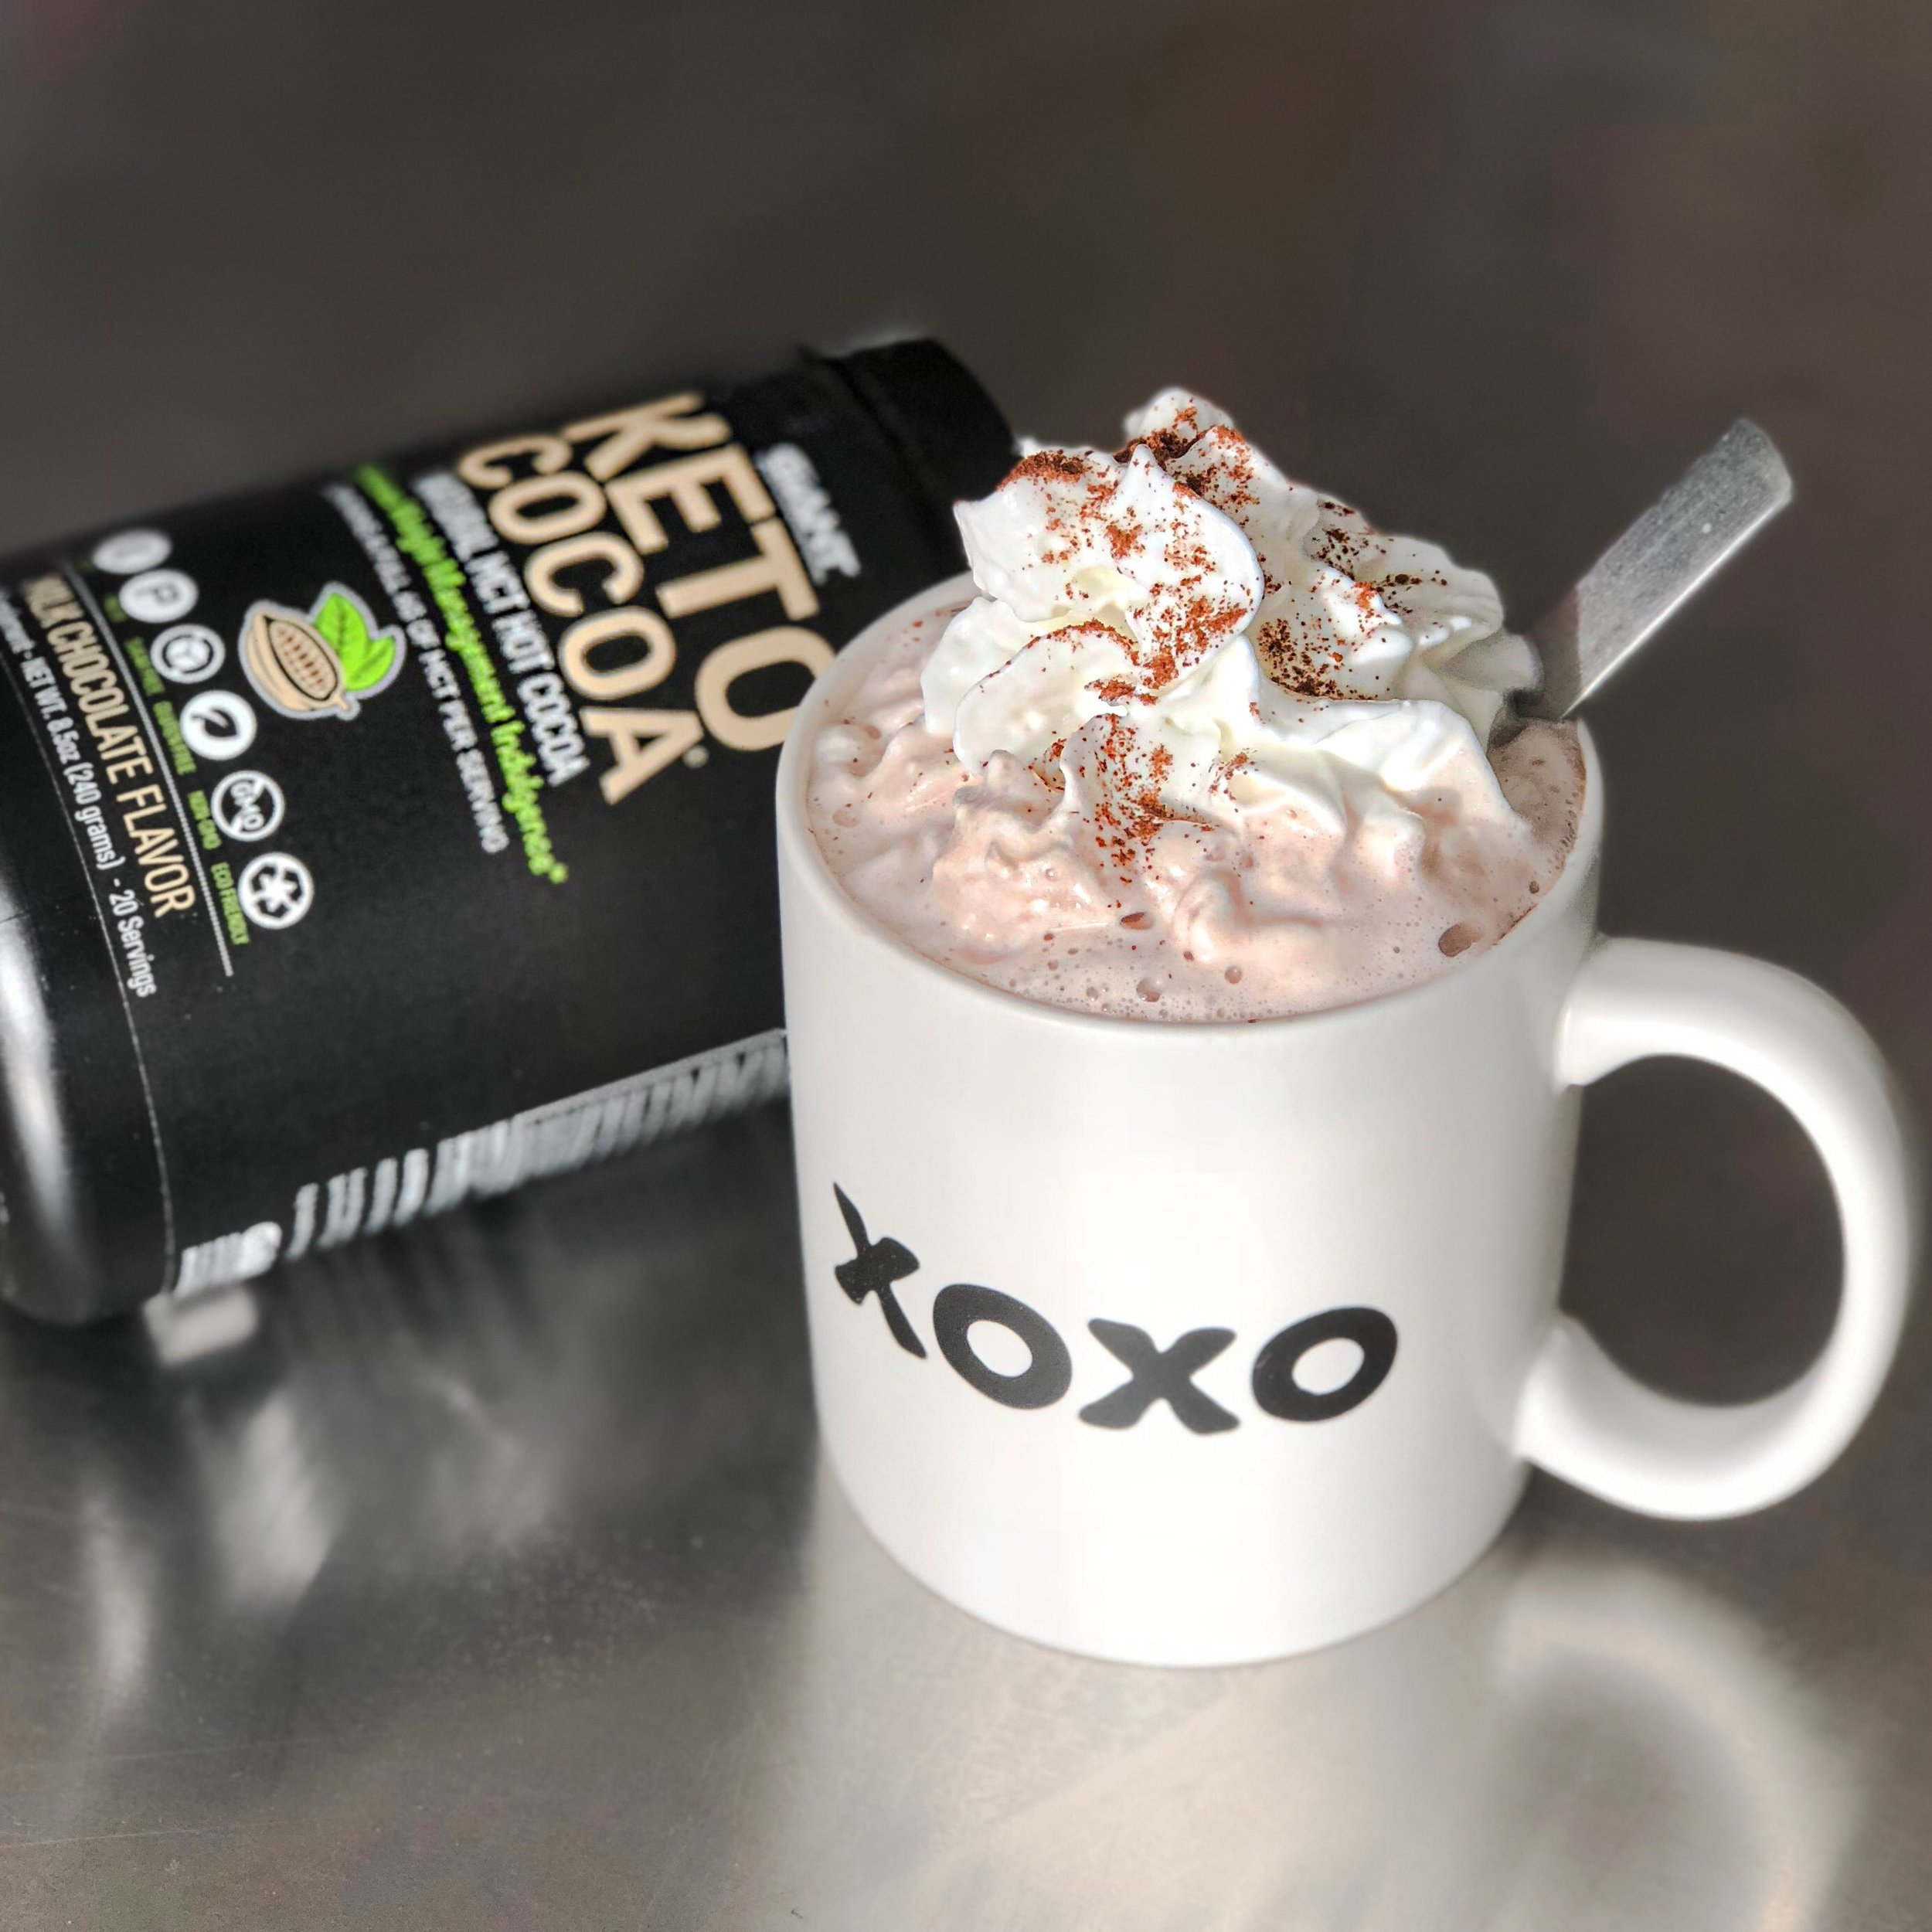 Keto Cocoa topped with whipped cream and cinnamon!  Click HERE  to purchase, save 20% with code KETOCITY